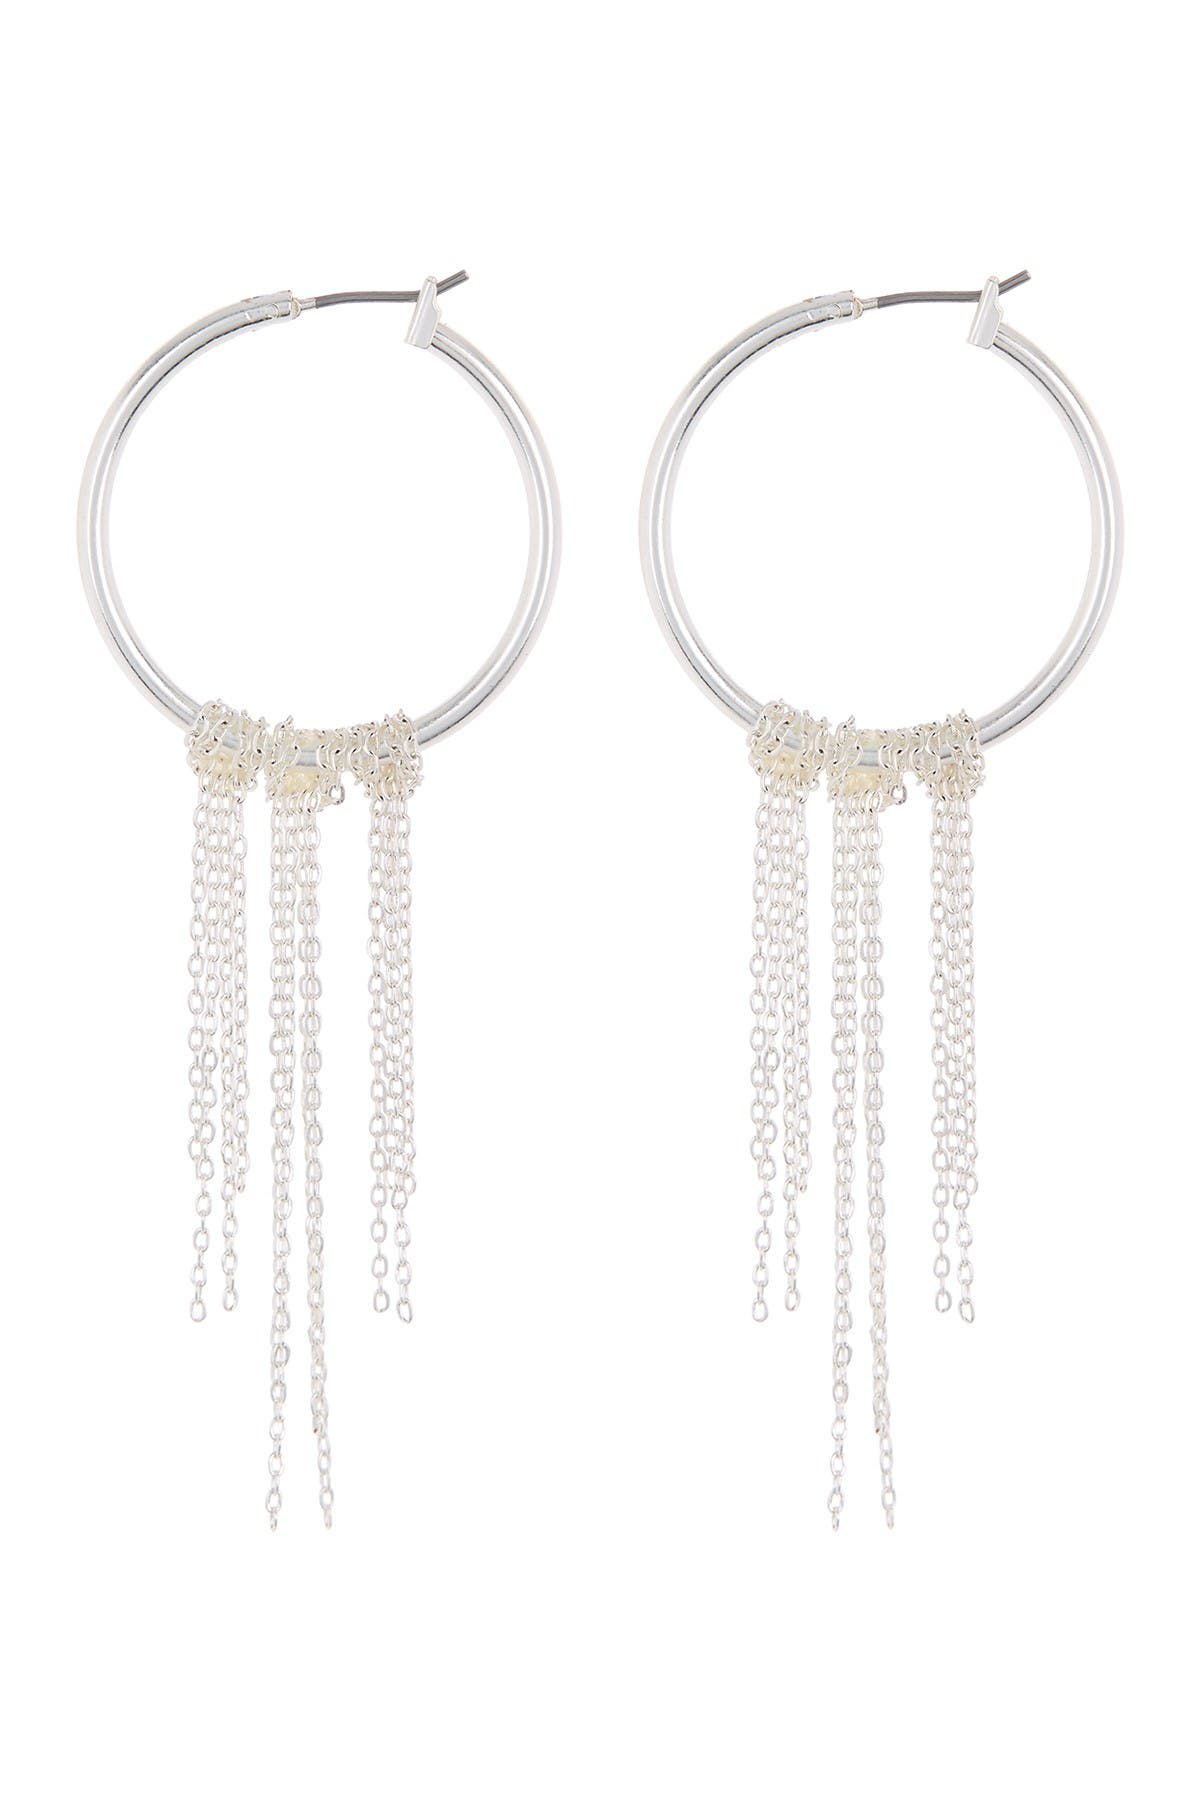 Image of Lucky Brand Silver-Tone Chain Drop Hoop Earrings